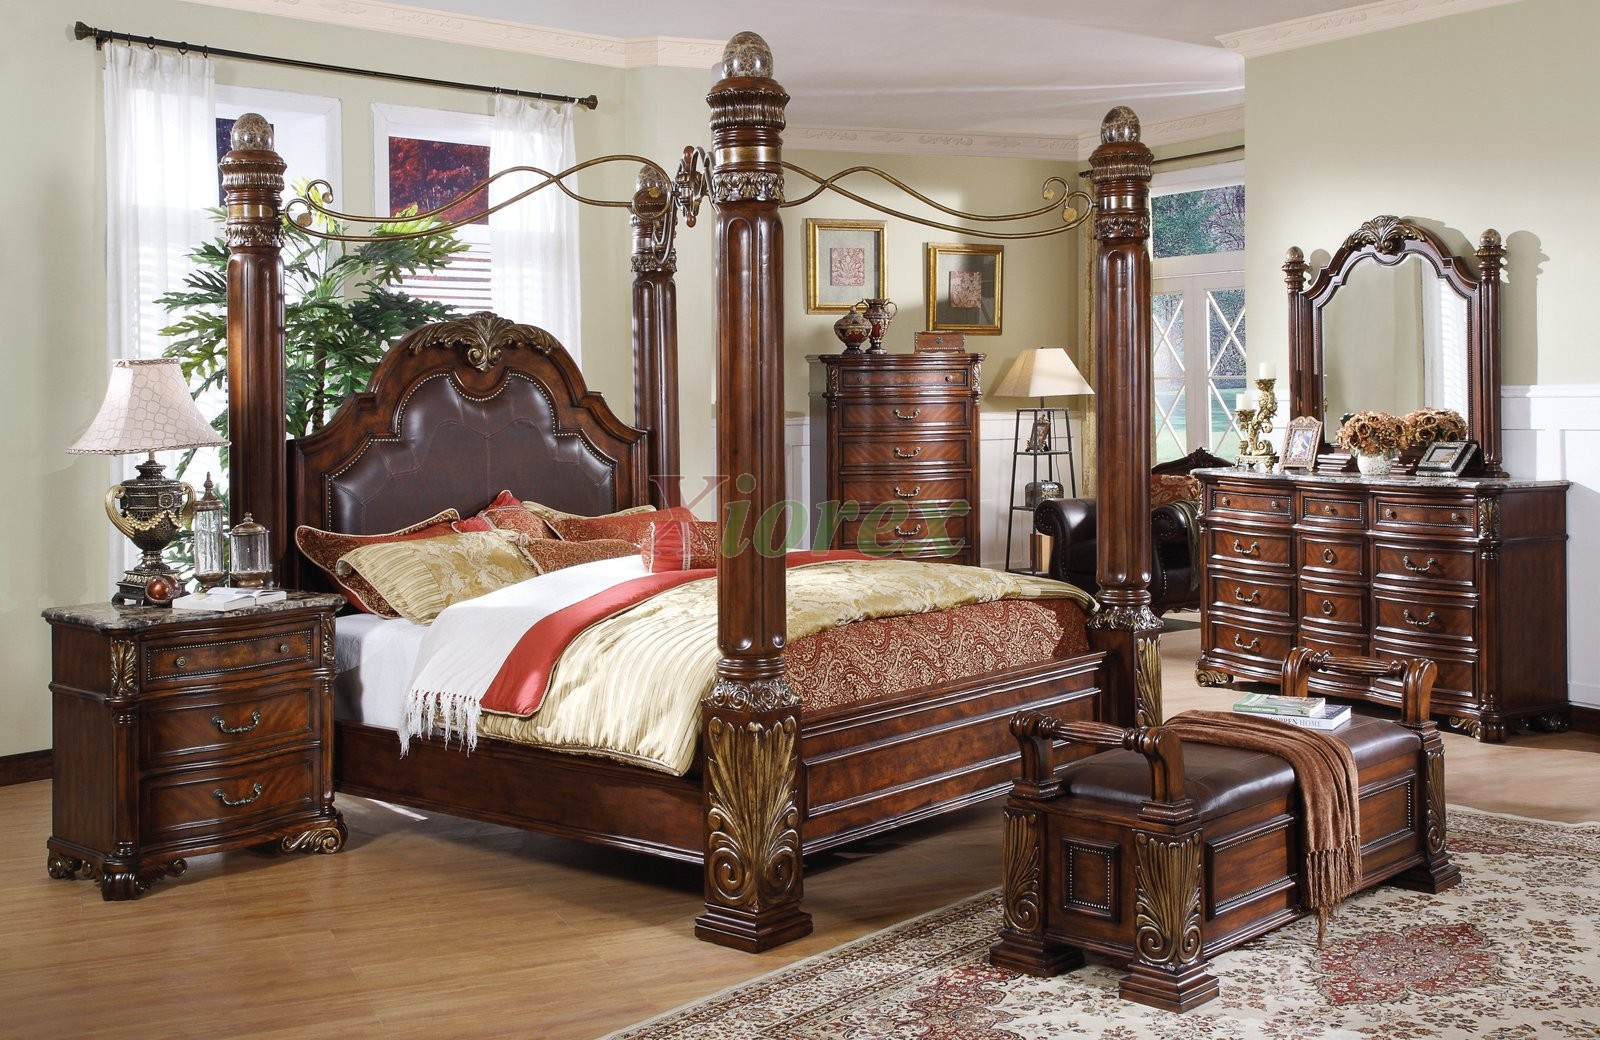 Canopy bed sets bedroom furniture sets w poster canopy for Bedroom set with bed